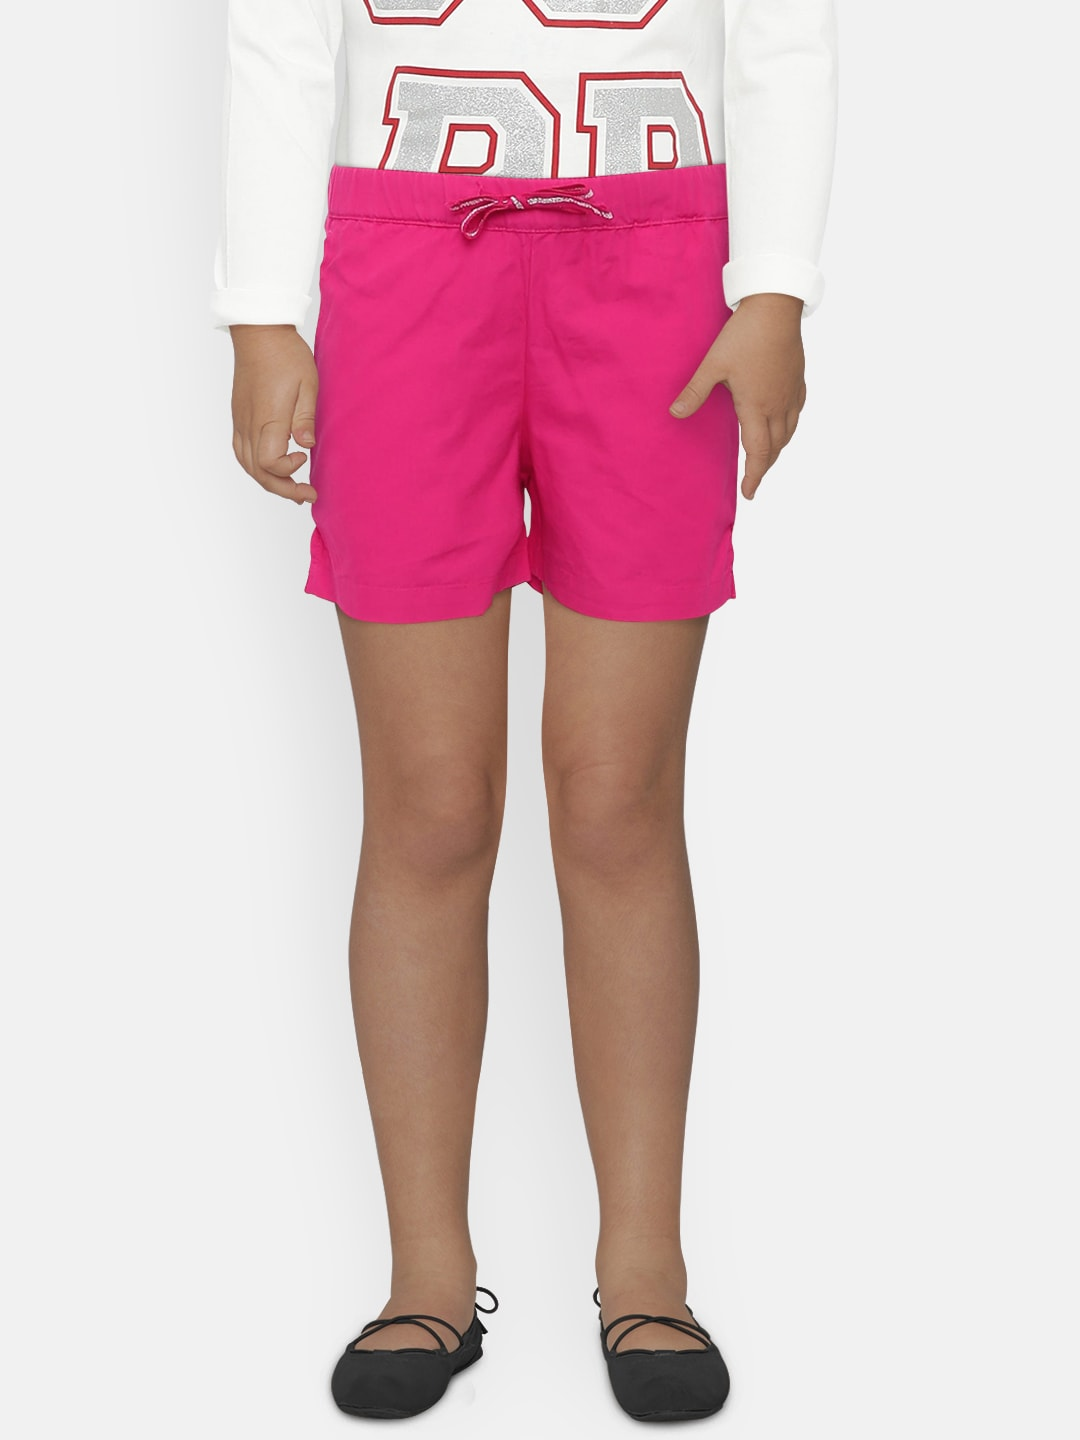 8c92e696199 Shorts For Girls- Buy Girls Shorts online in India - Myntra